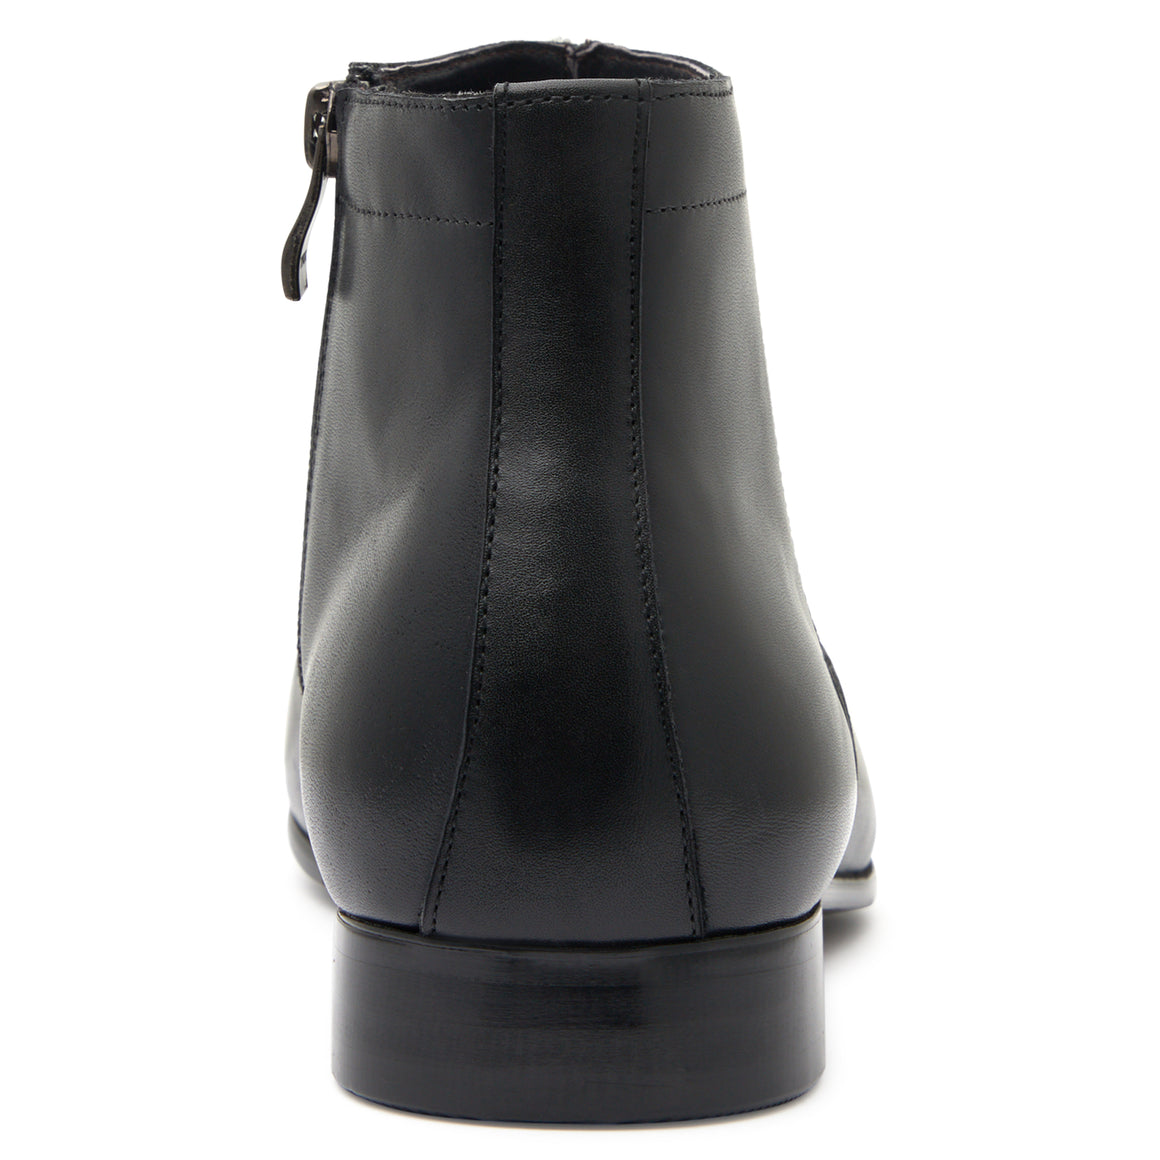 Essex Black Zip Boots